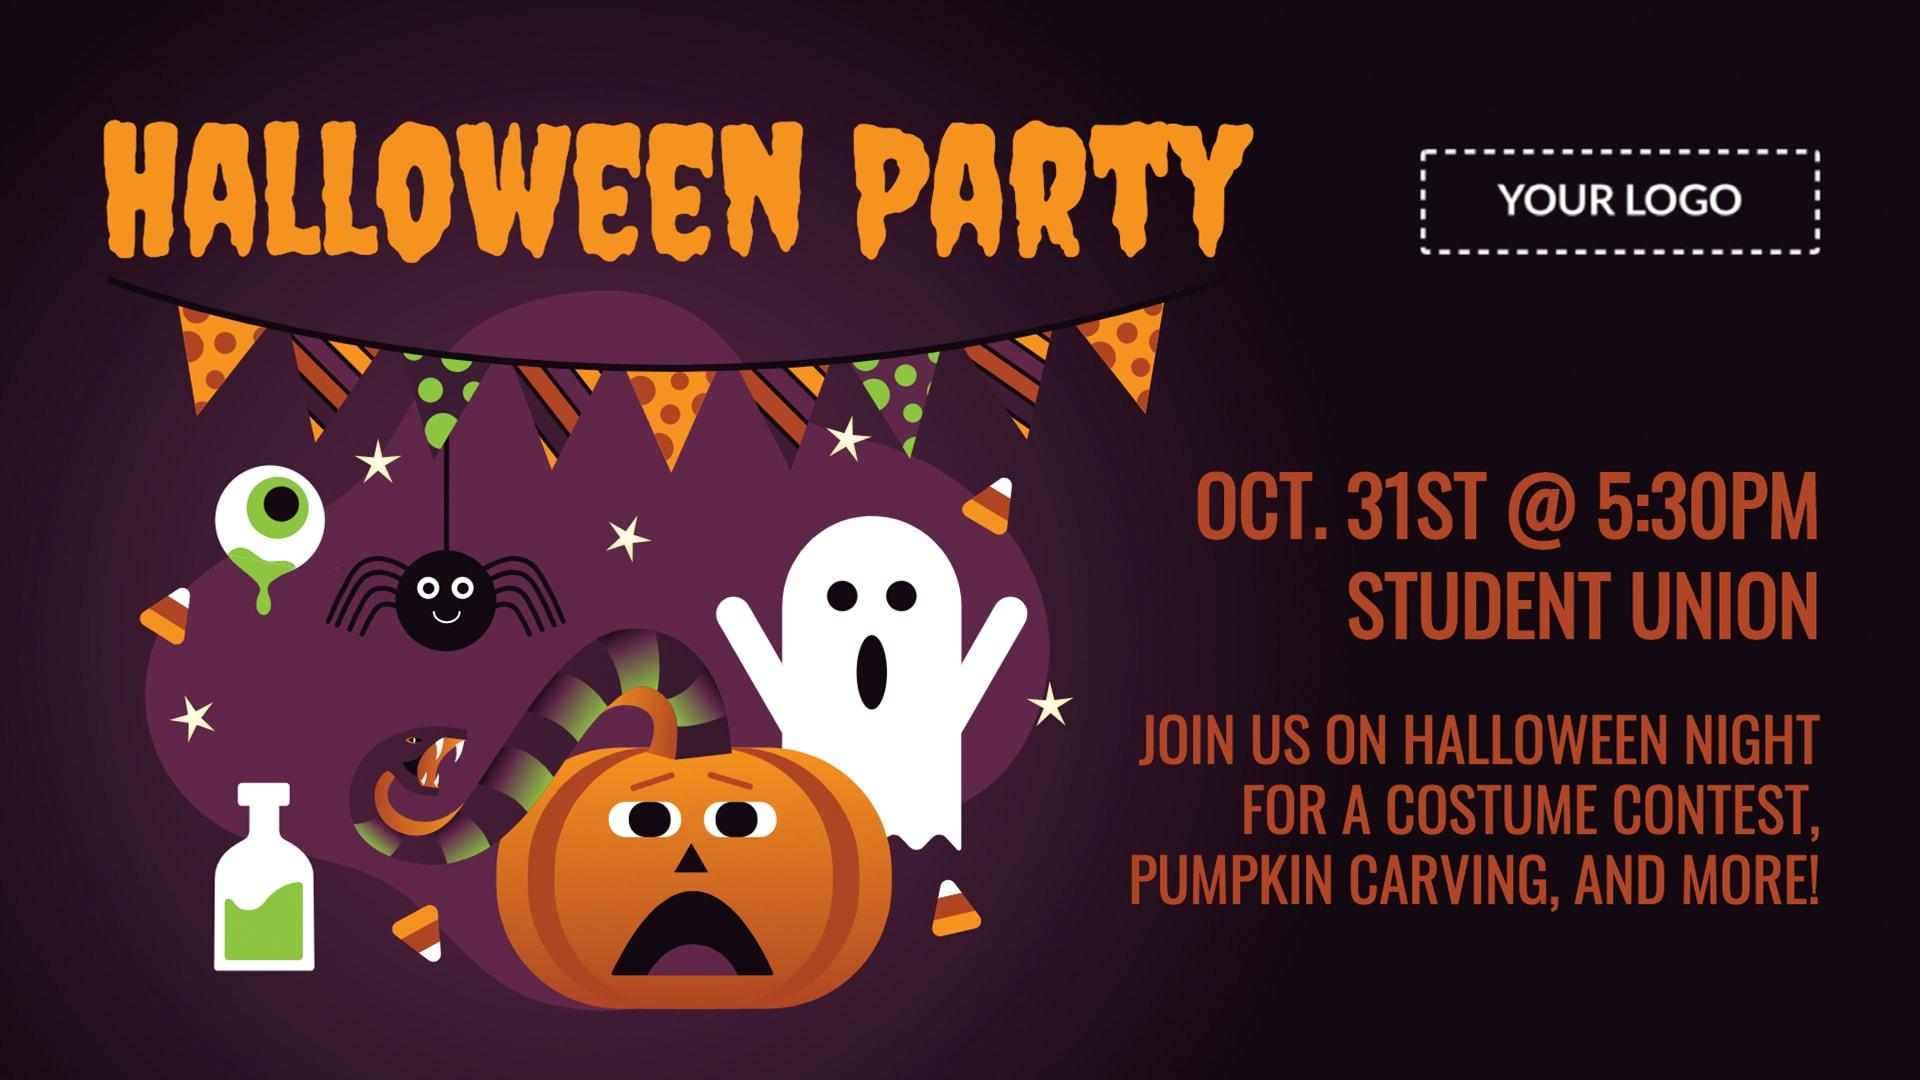 Halloween Party Digital Signage Template